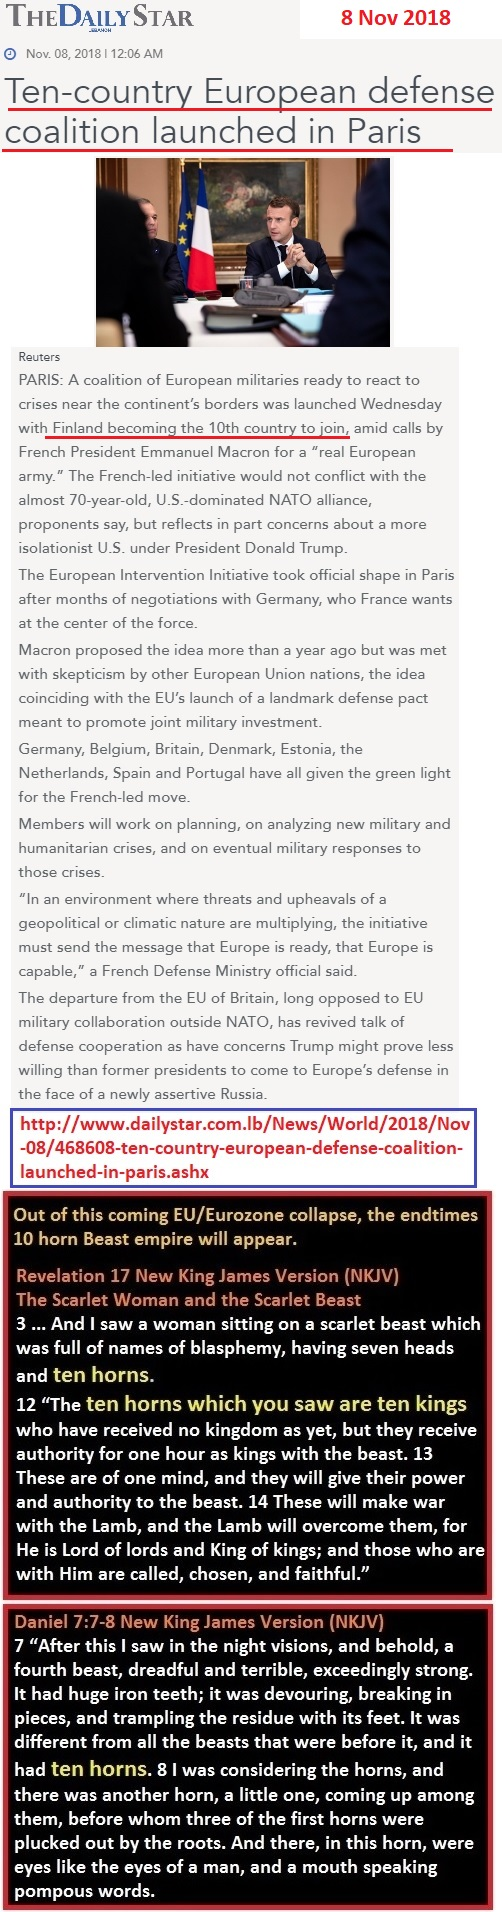 http://www.dailystar.com.lb/News/World/2018/Nov-08/468608-ten-country-european-defense-coalition-launched-in-paris.ashx